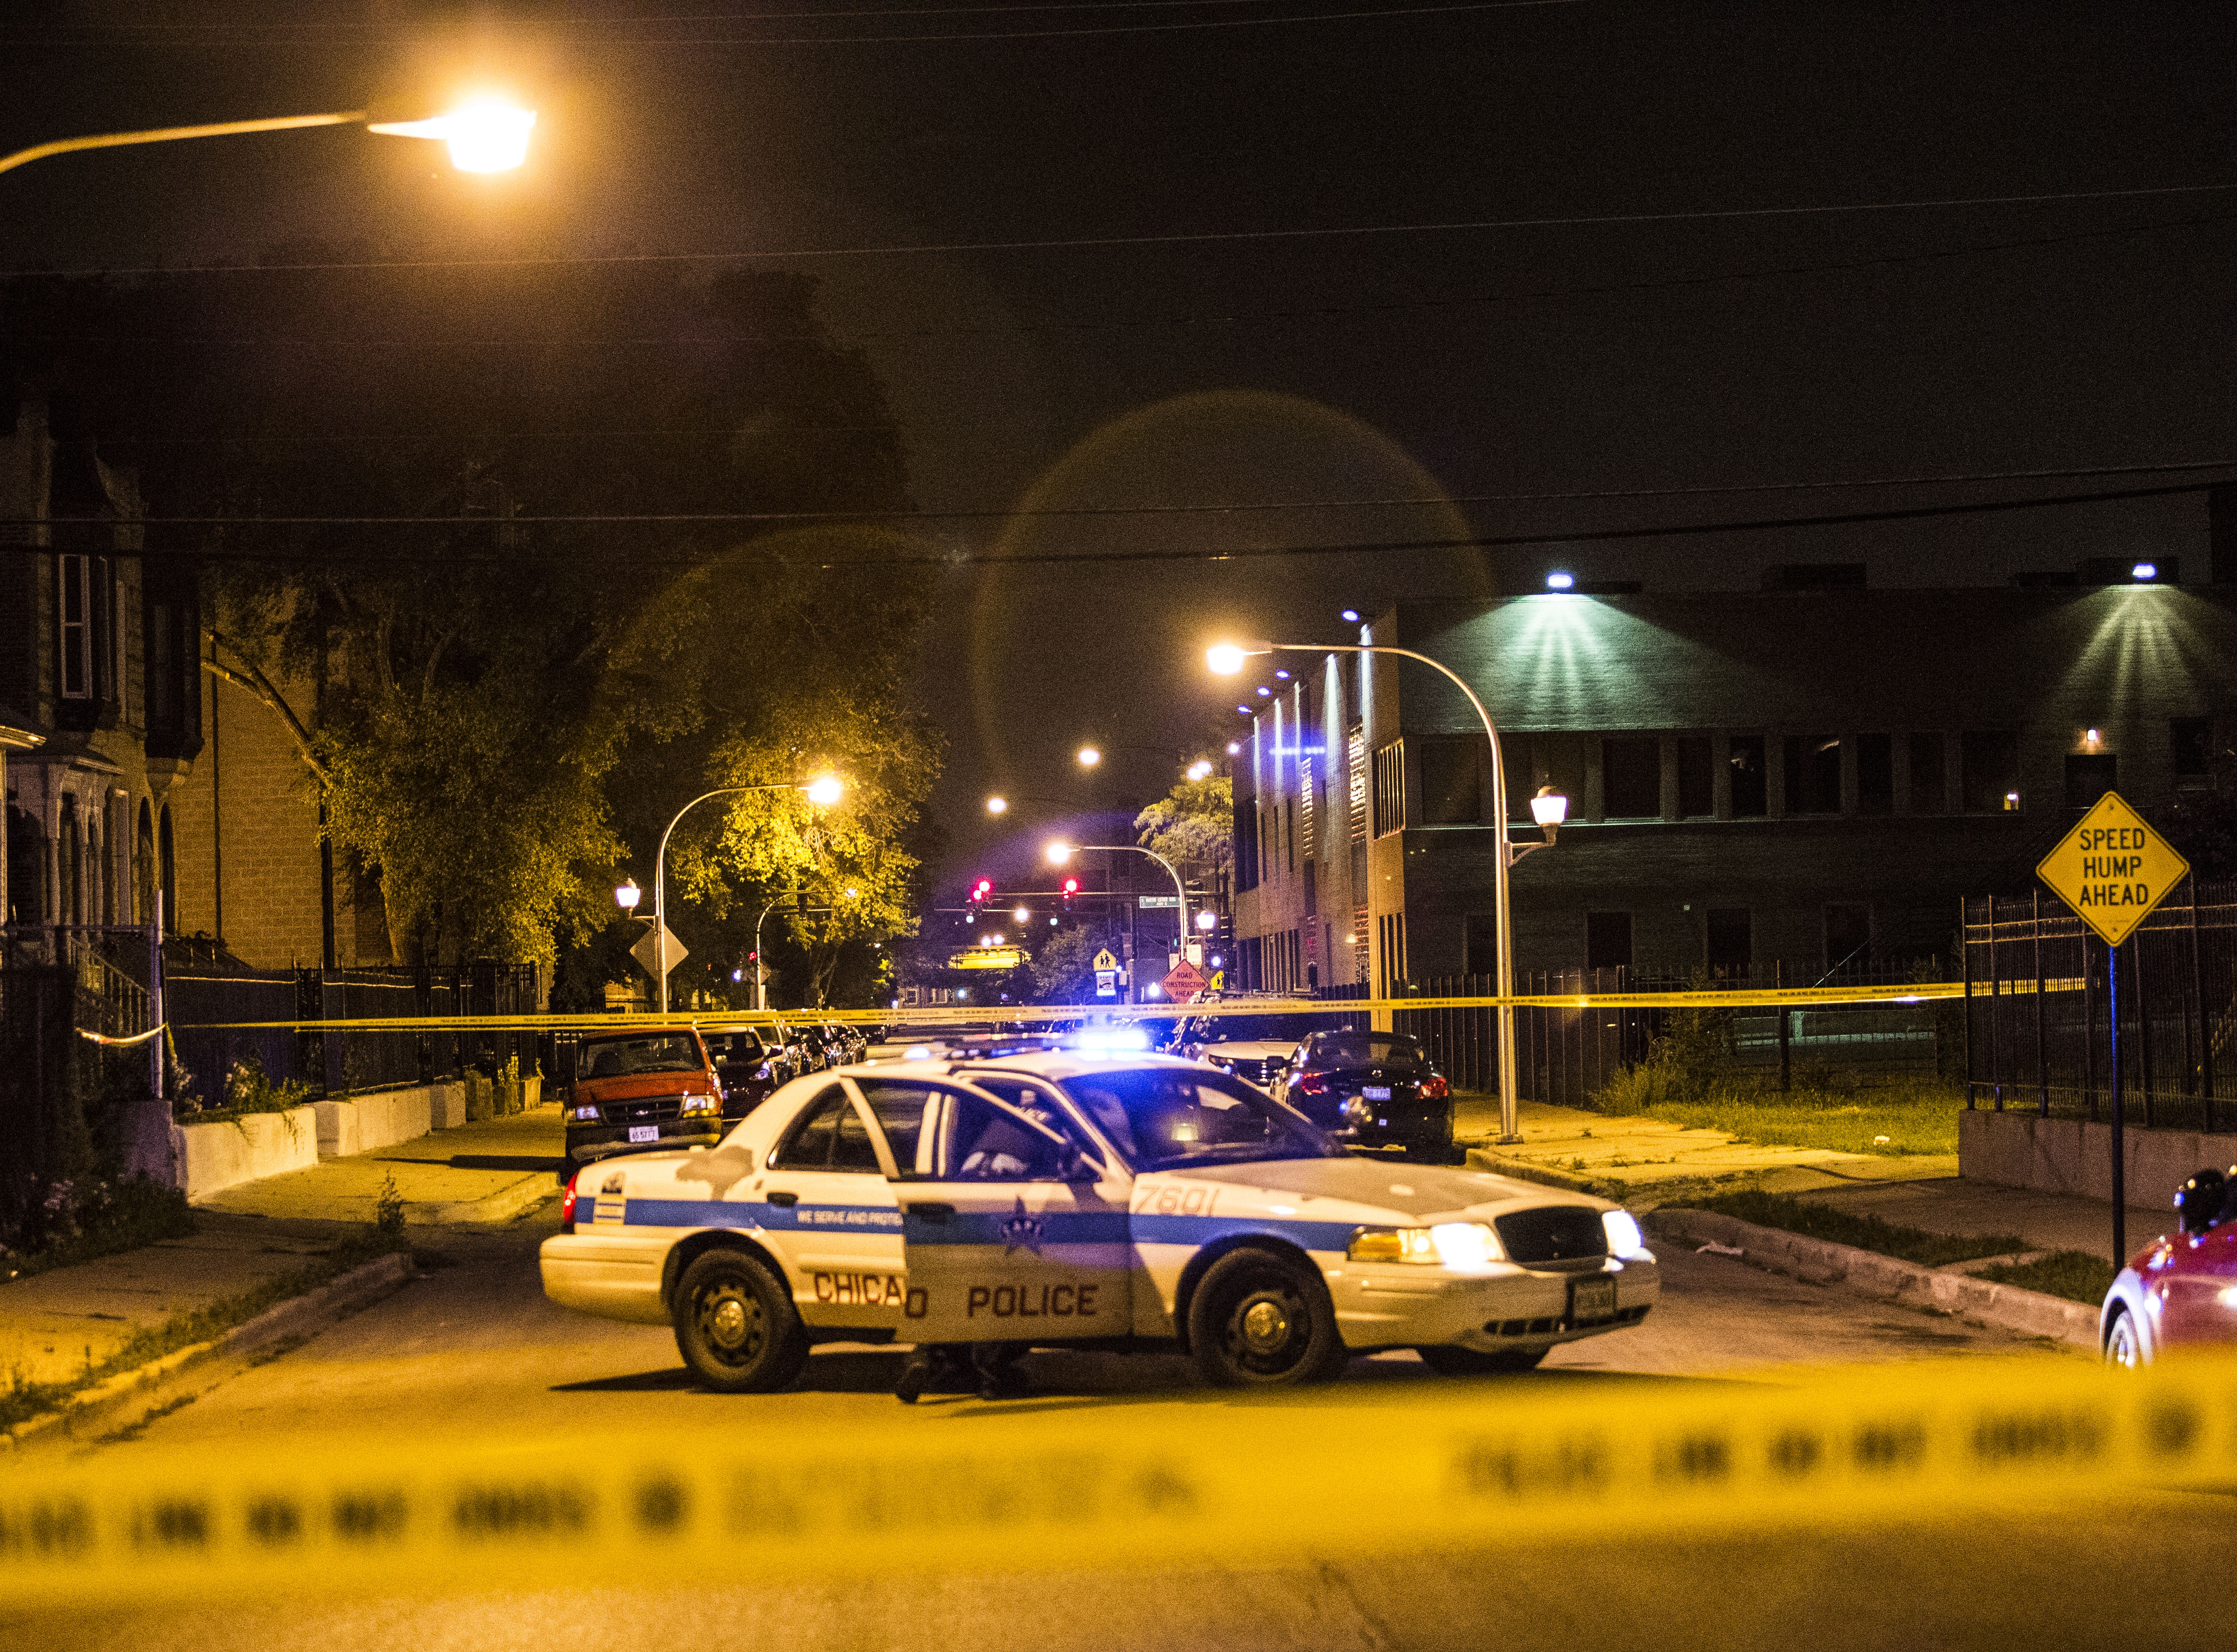 One person was killed, and twenty-three others were wounded in shootings June 23, 2021, in Chicago.